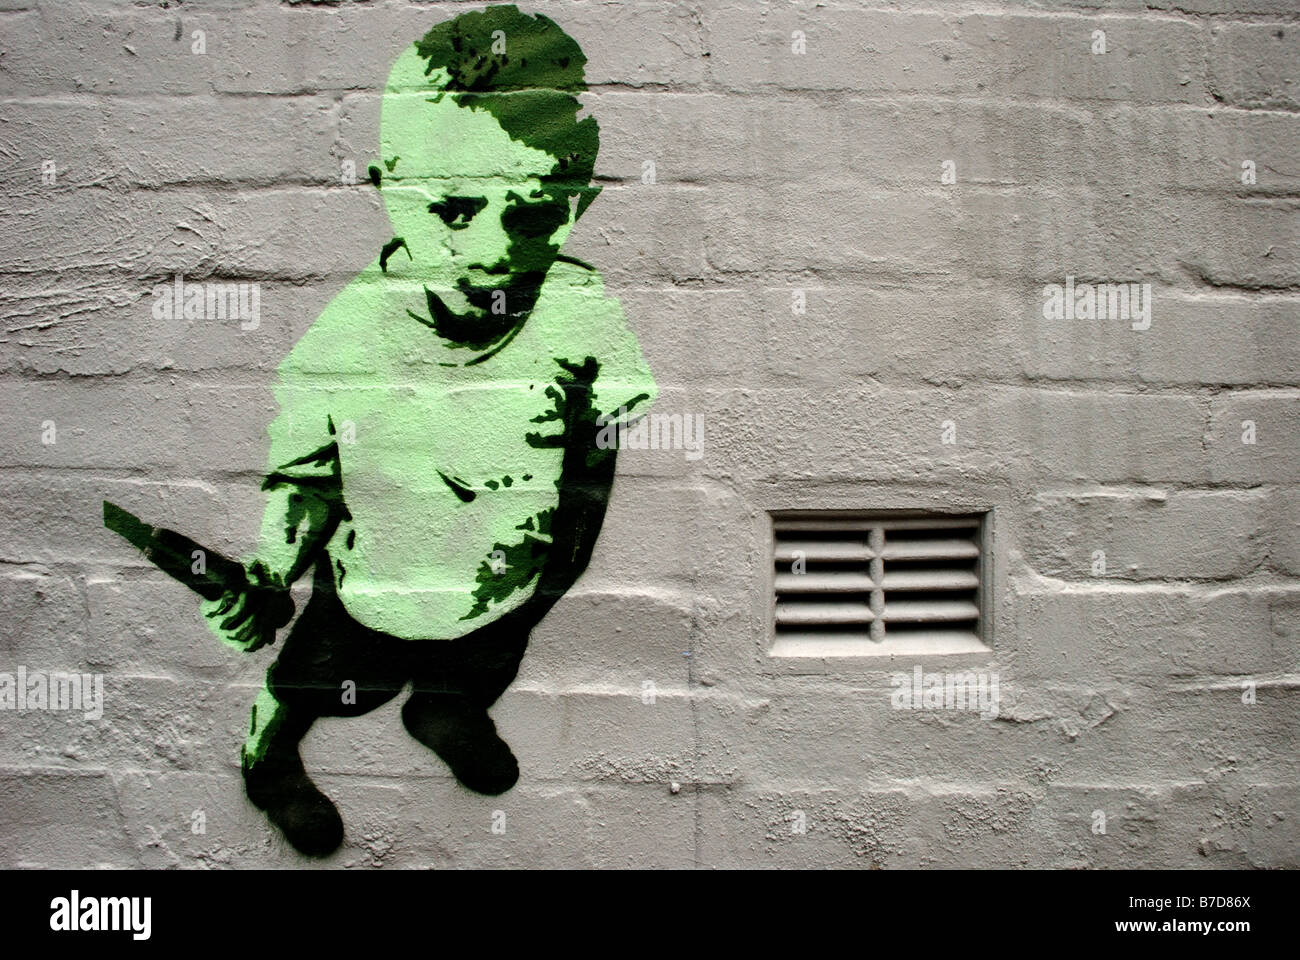 Stencil graffiti of a boy holding a knife placed near an air vent on a white washed terrace house wall - Stock Image